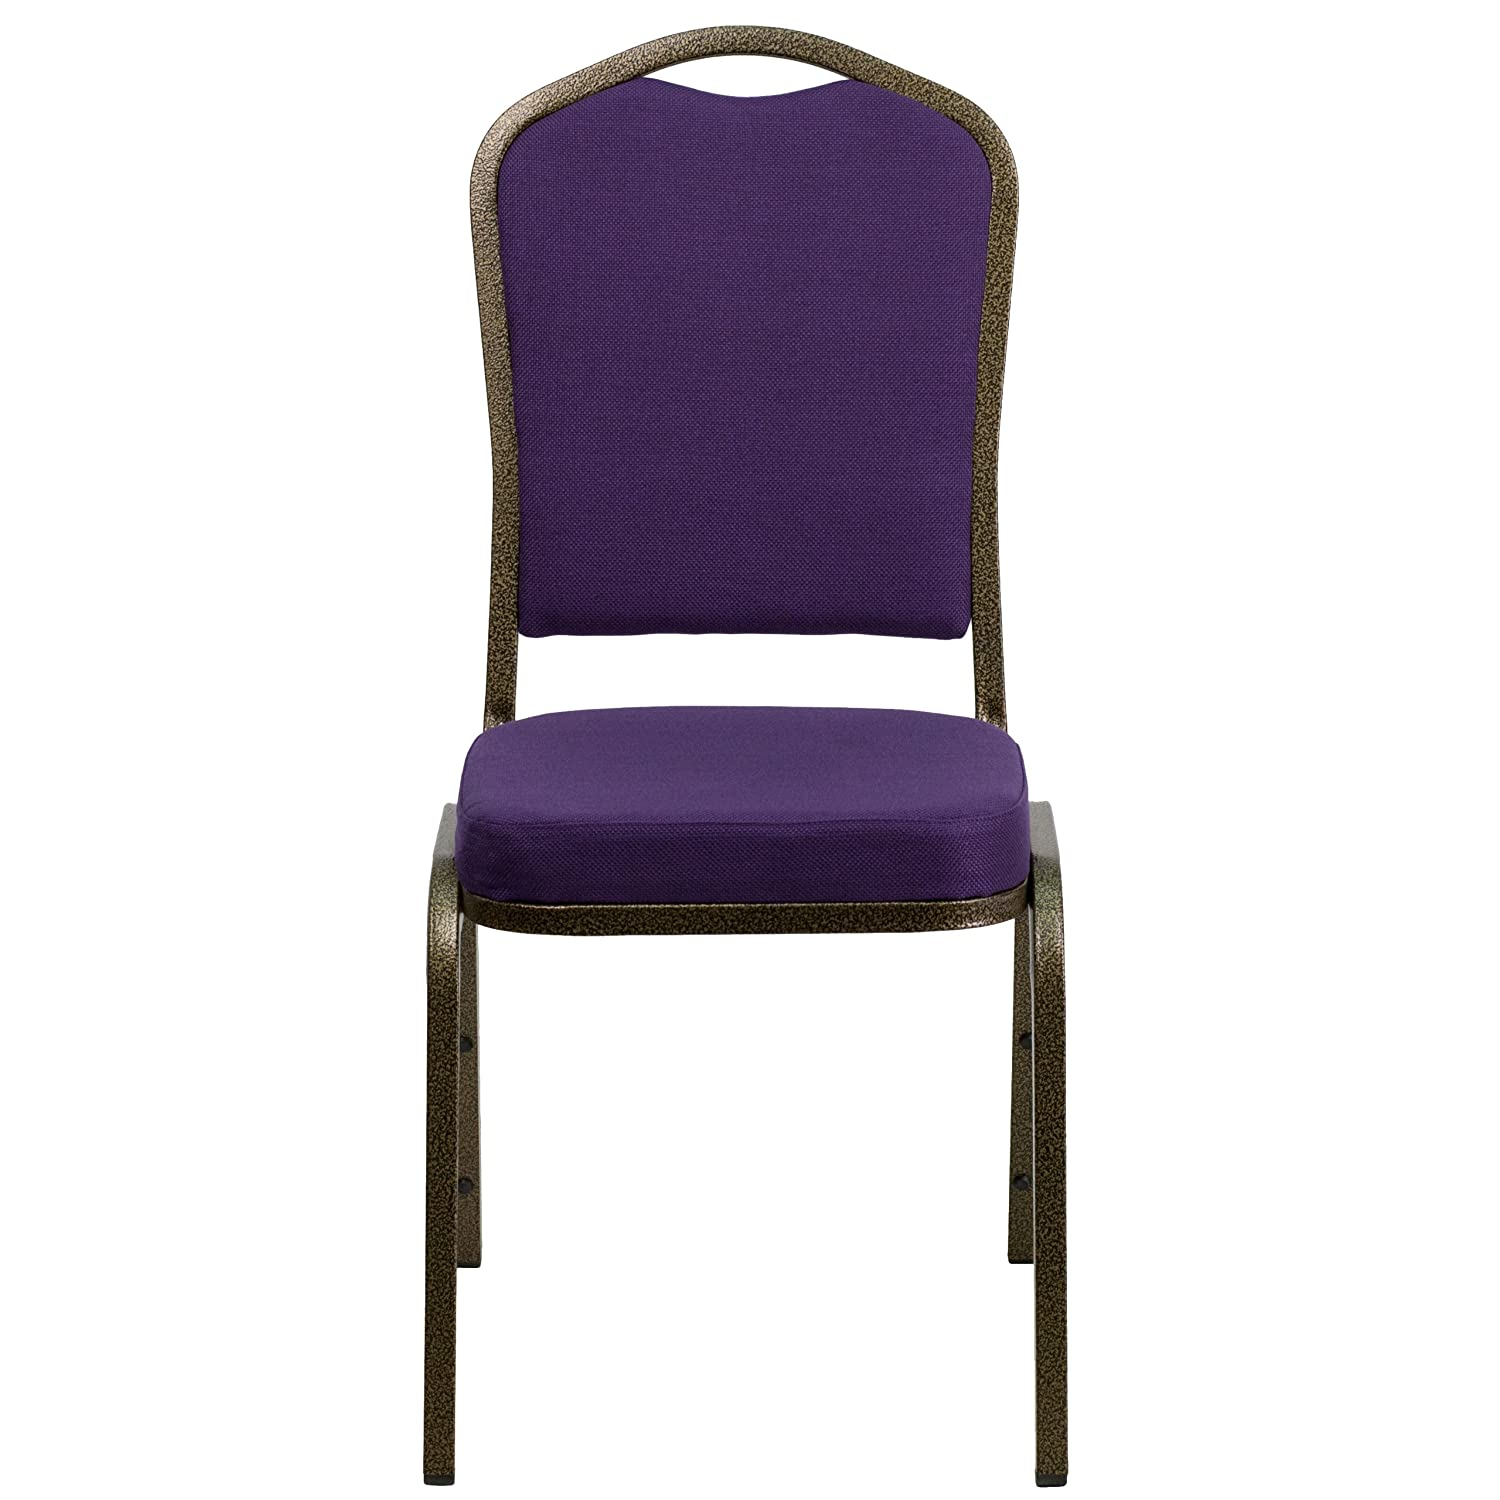 Delightful Amazon.com: Flash Furniture HERCULES Series Crown Back Stacking Banquet  Chair In Purple Fabric   Gold Vein Frame: Kitchen U0026 Dining